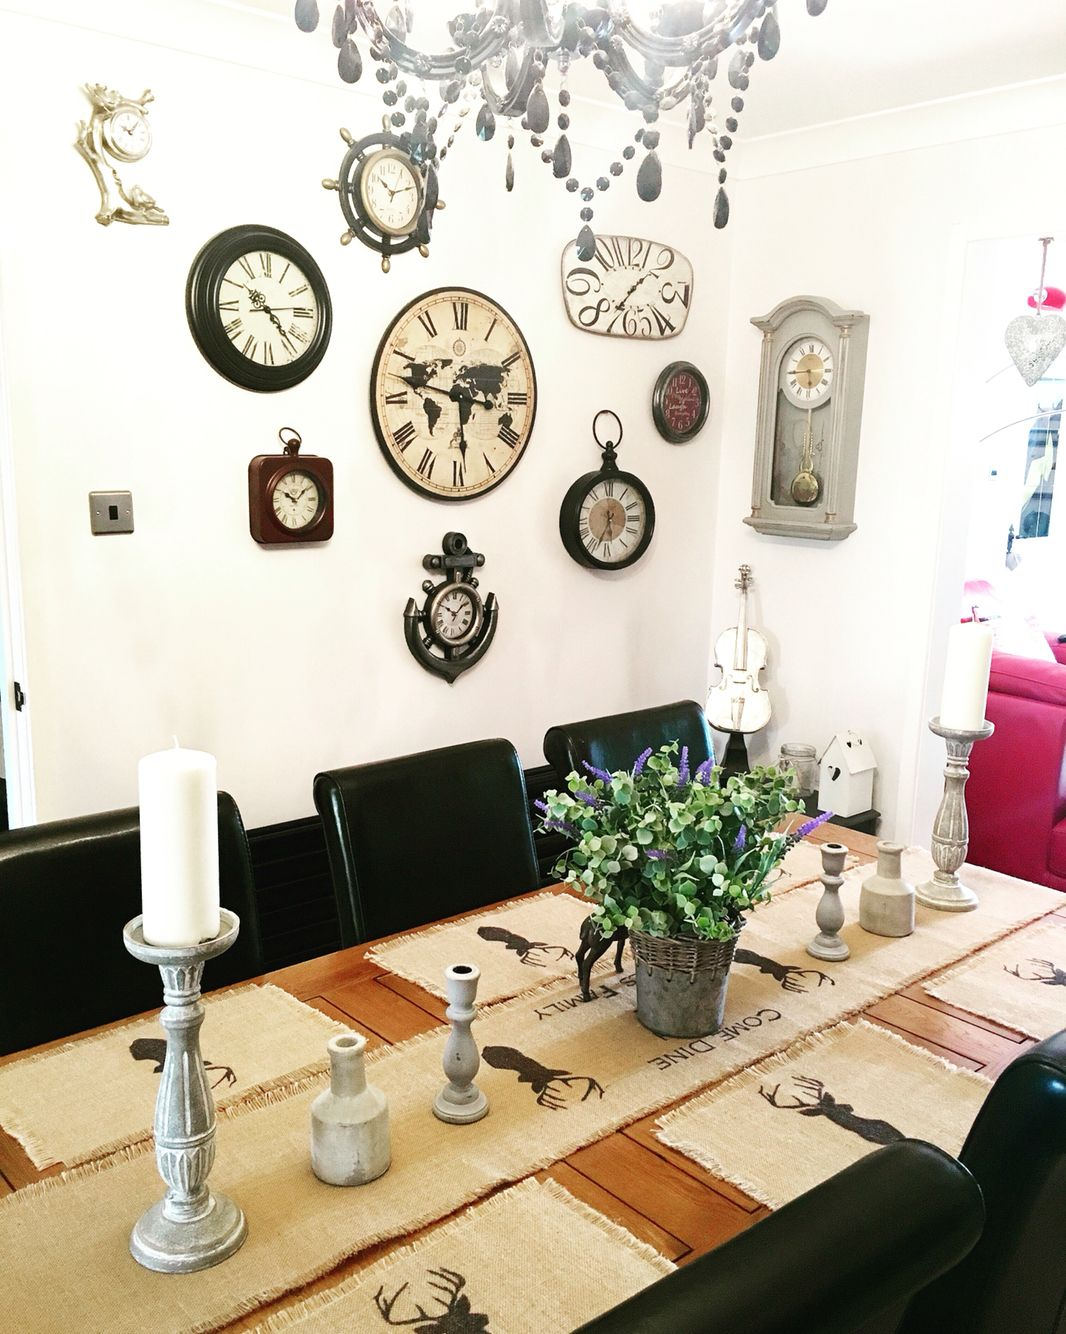 My Funky Clock Wall In My Dining Room  My Modest Home In England Stunning Funky Dining Room Design Decoration